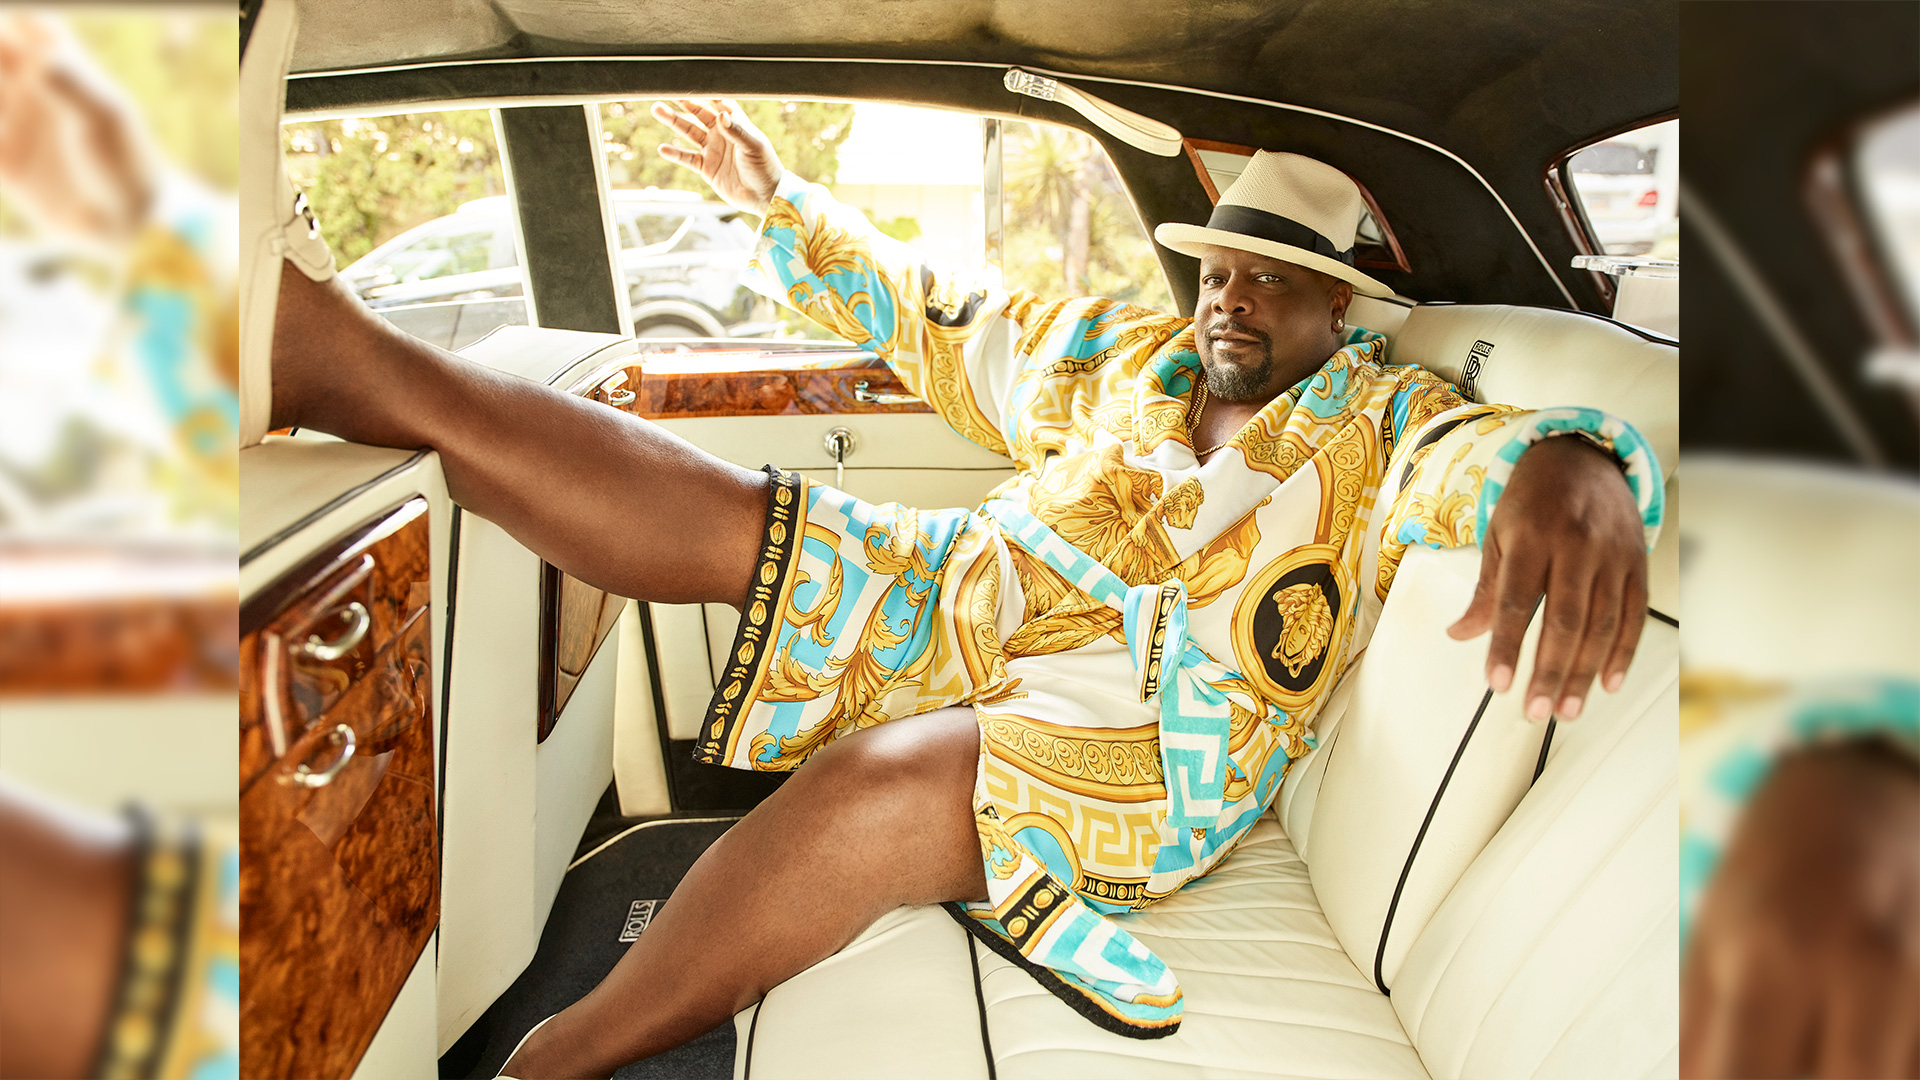 Cedric the Entertainer is living the high life